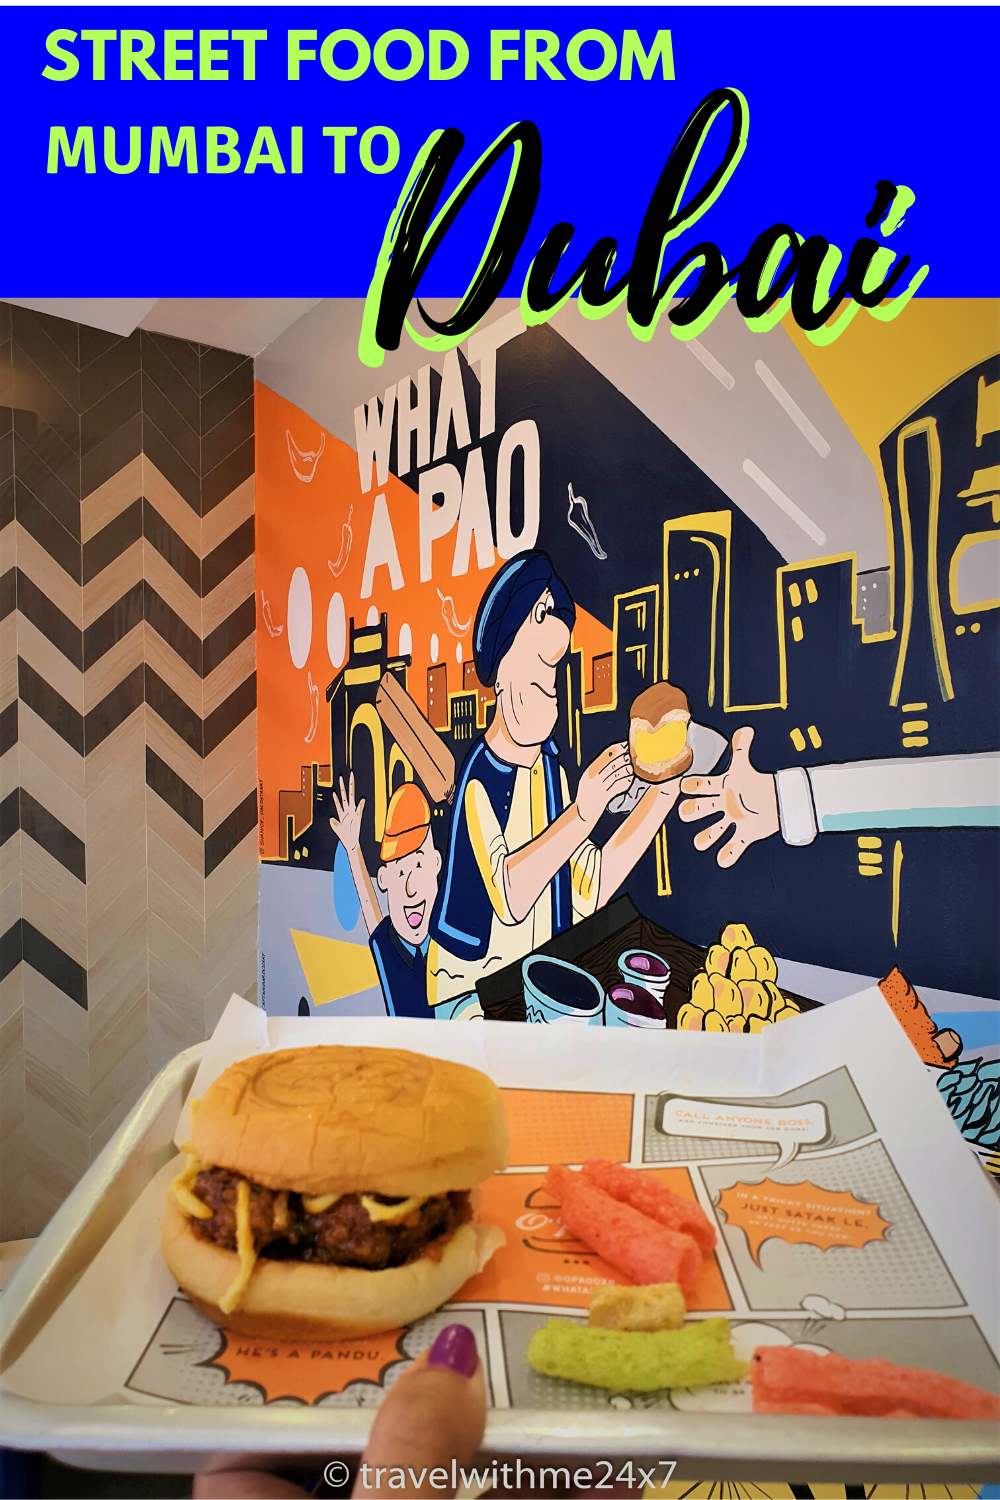 Review Of O Pao Indian Sliders Street Food From Mumbai To Dubai In 2020 Foodie Travel Foodie Travel Europe Street Food